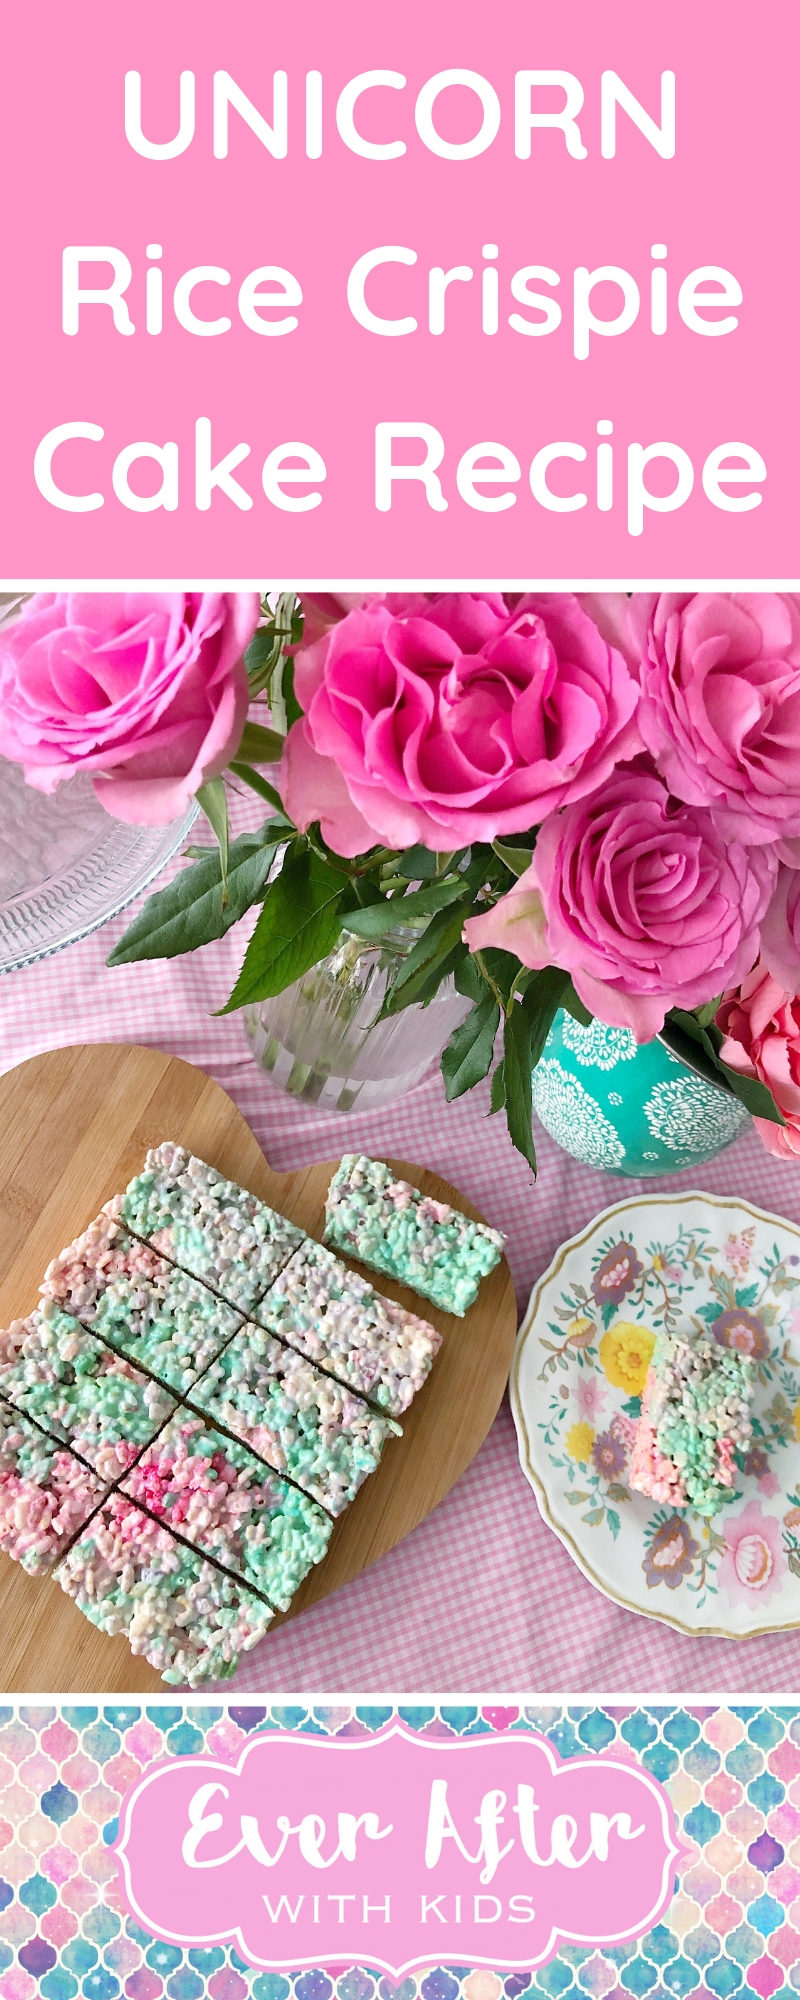 rice crispie cake recipe easy kids